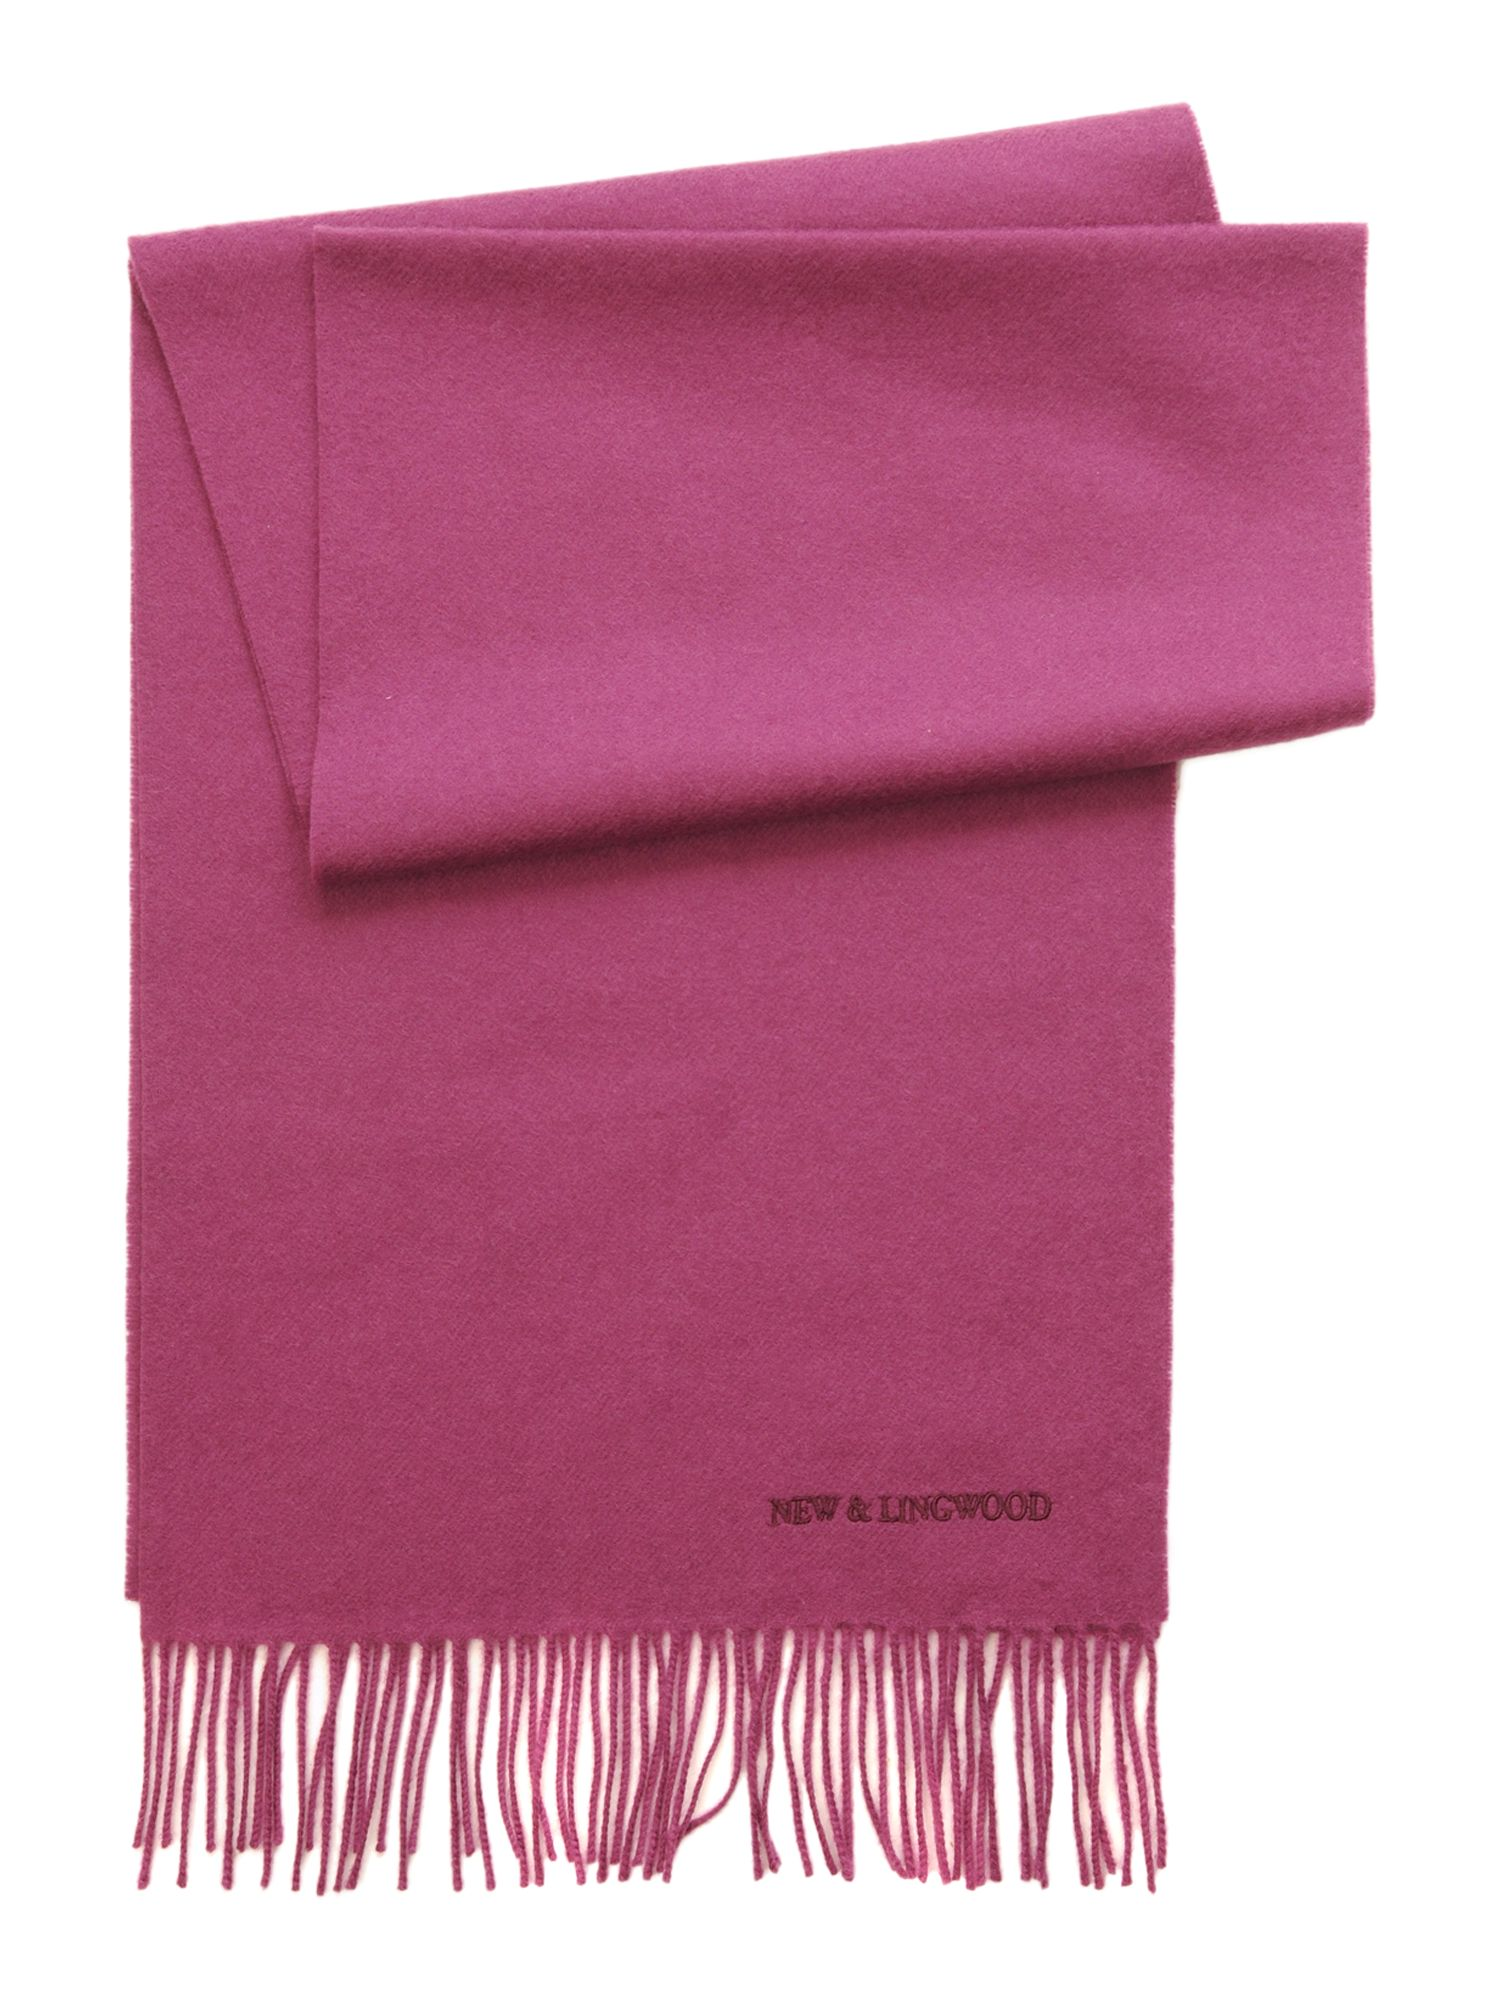 Luxury plain wool scarf